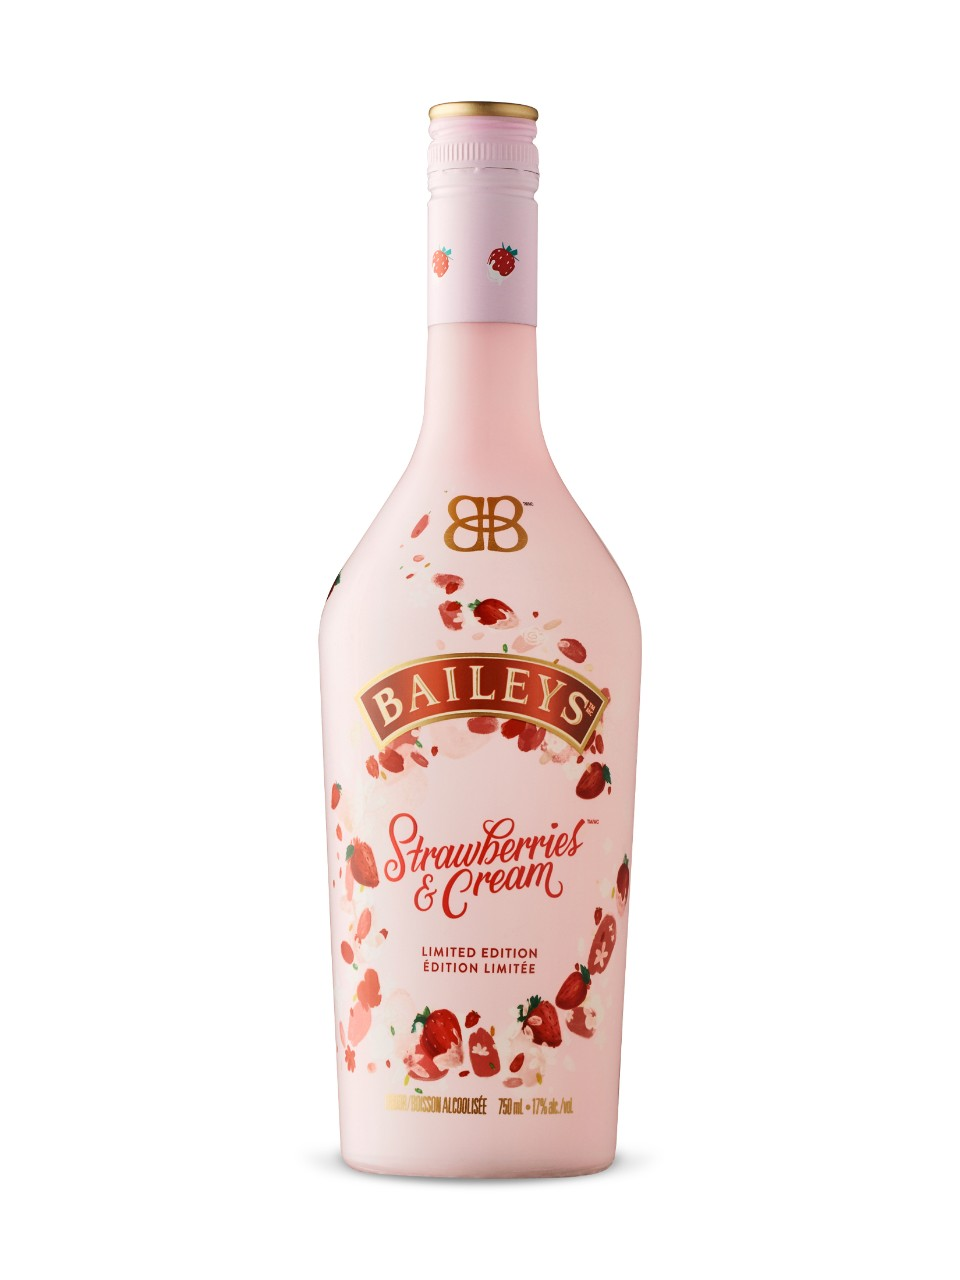 Traditional Baileys Strawberries Cream Baileys Strawberries Cream Lcbo Drinks Rum Drinks Coffee Baileys Baileys nice food Drinks With Baileys